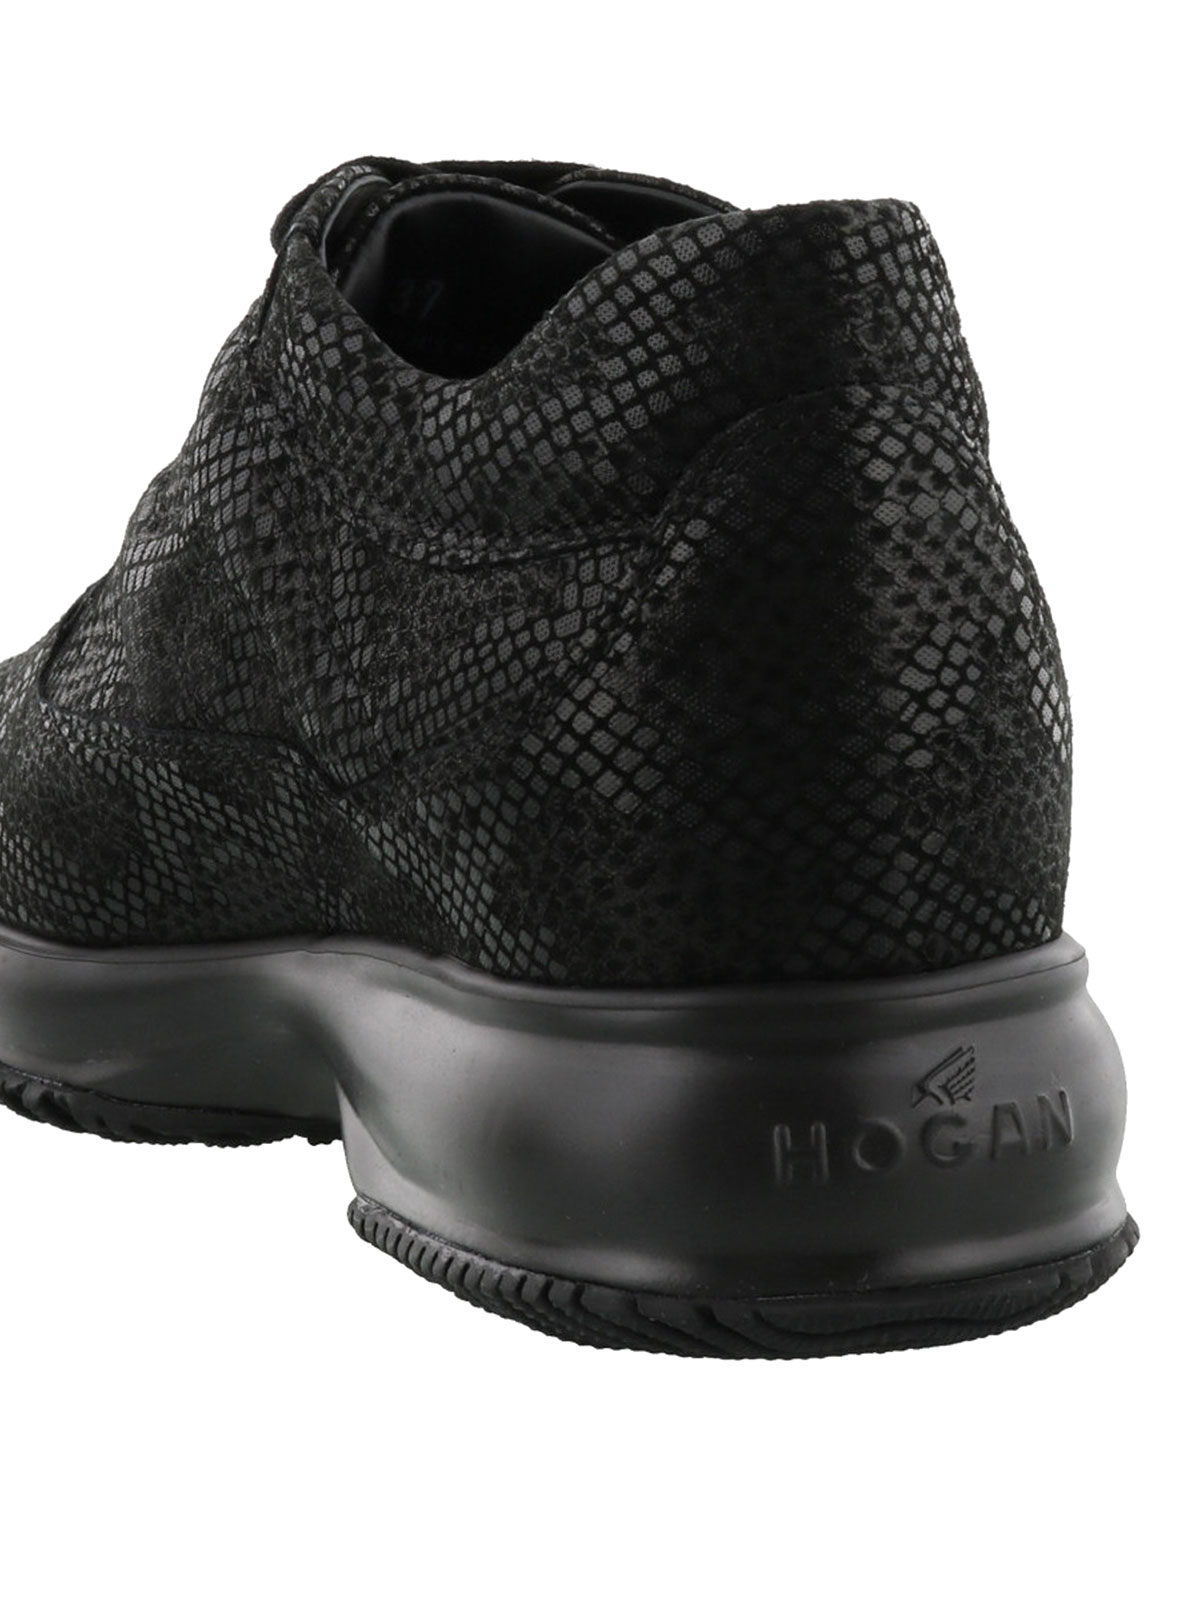 Hogan Interactive Shiny Suede Sneakers New Lower Prices 0VLX9B